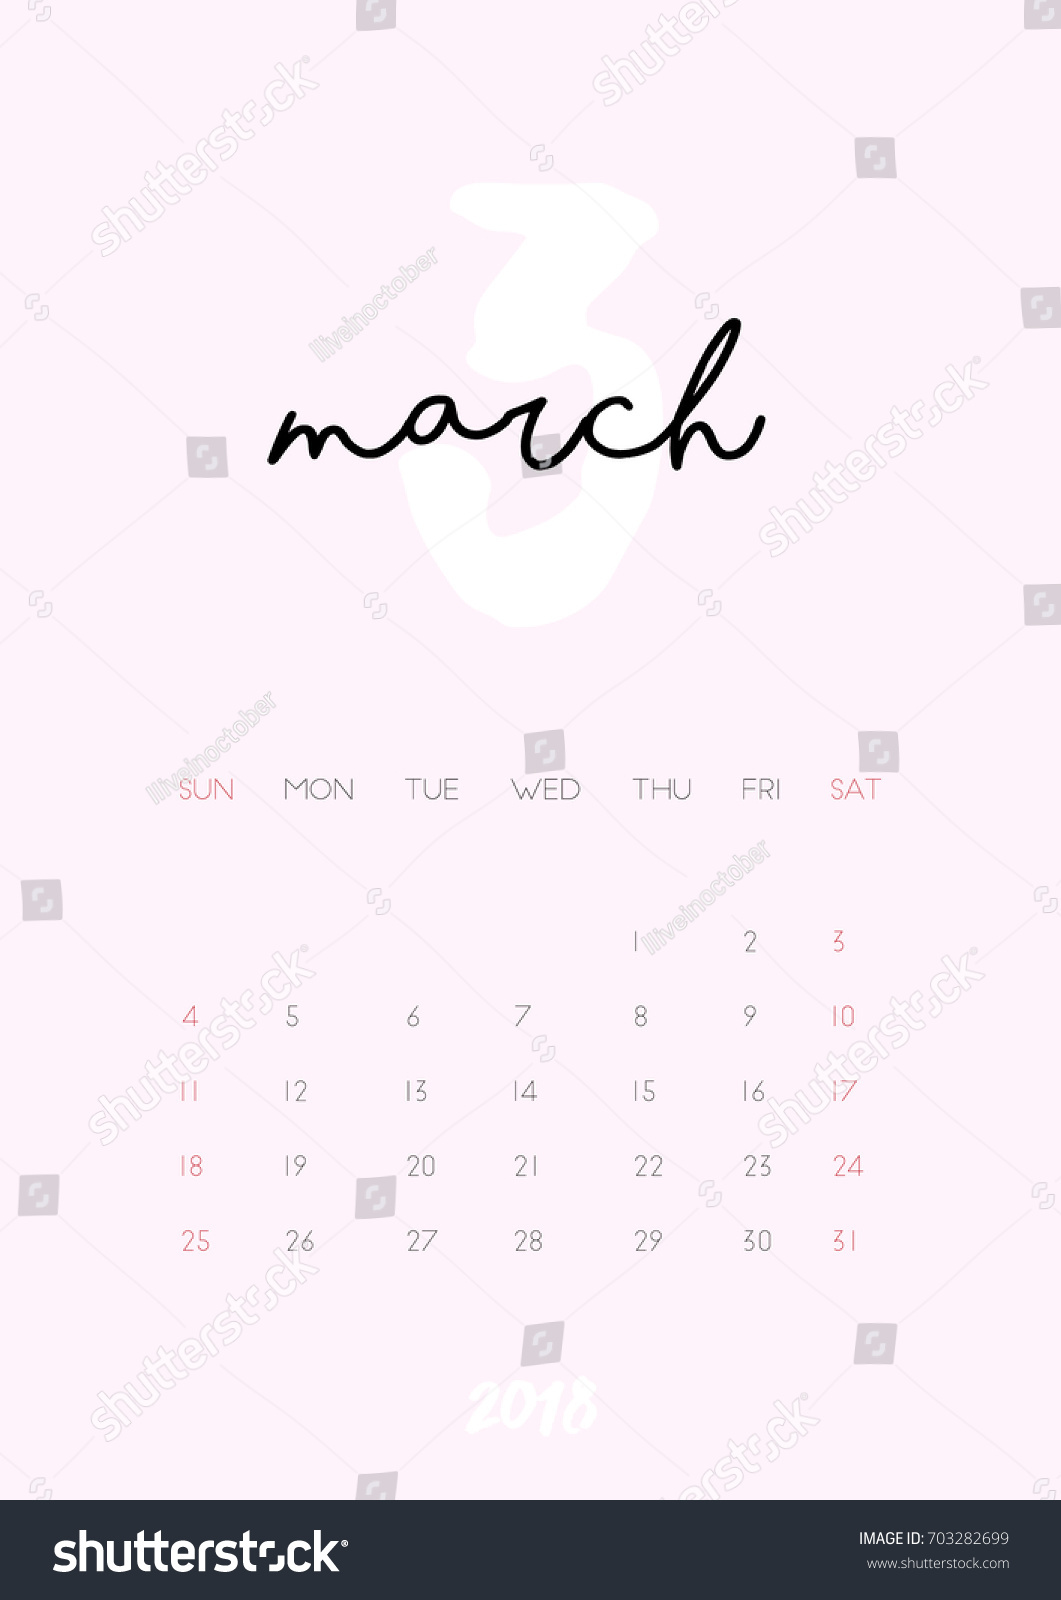 beautiful monthly calendar for march 2018 year printable and ready to use design template